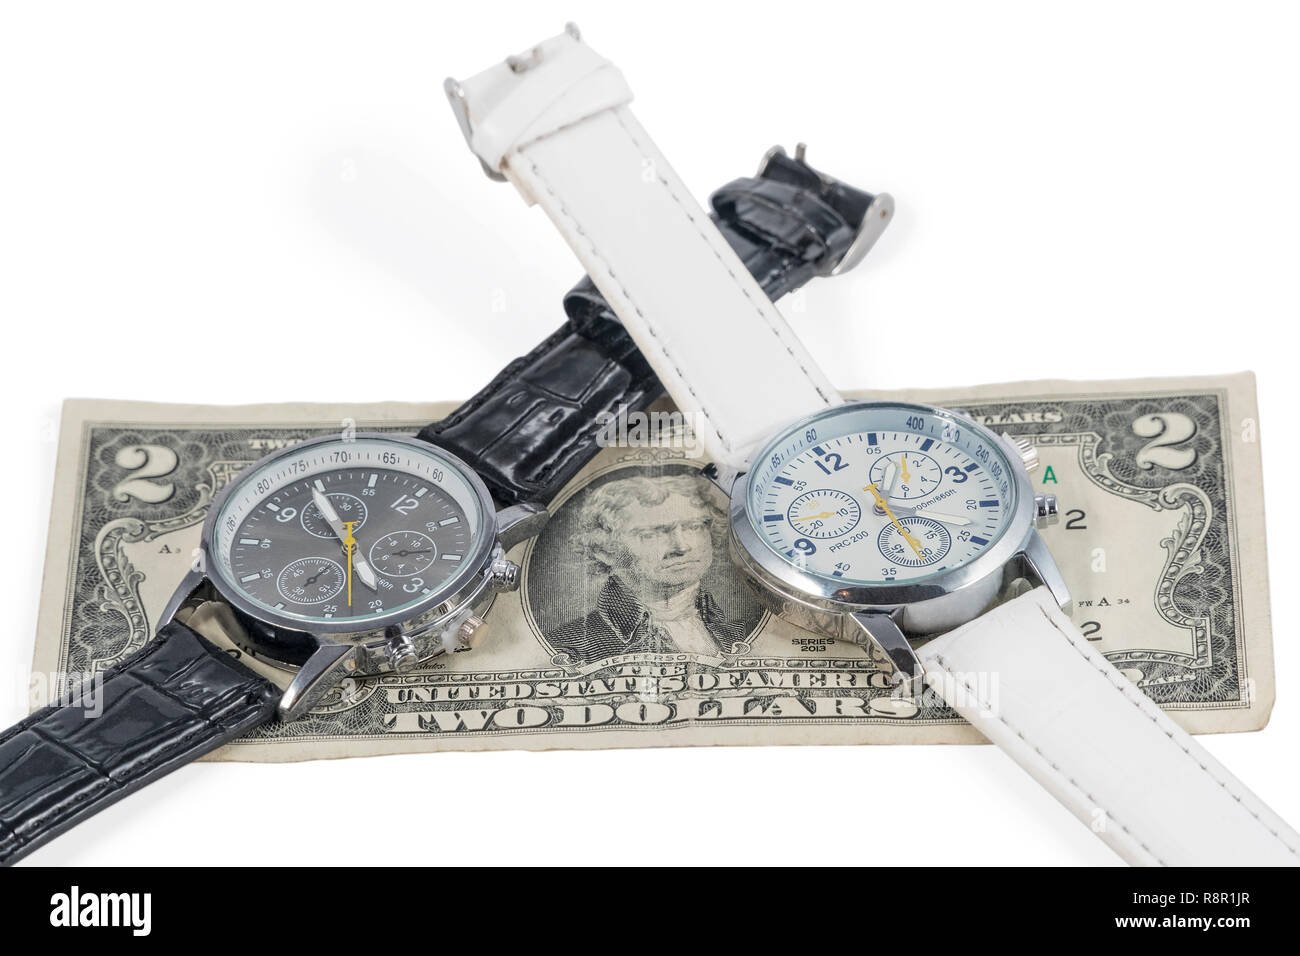 two wristwatches on a two-dollar bill, isolated on a white background - Stock Image